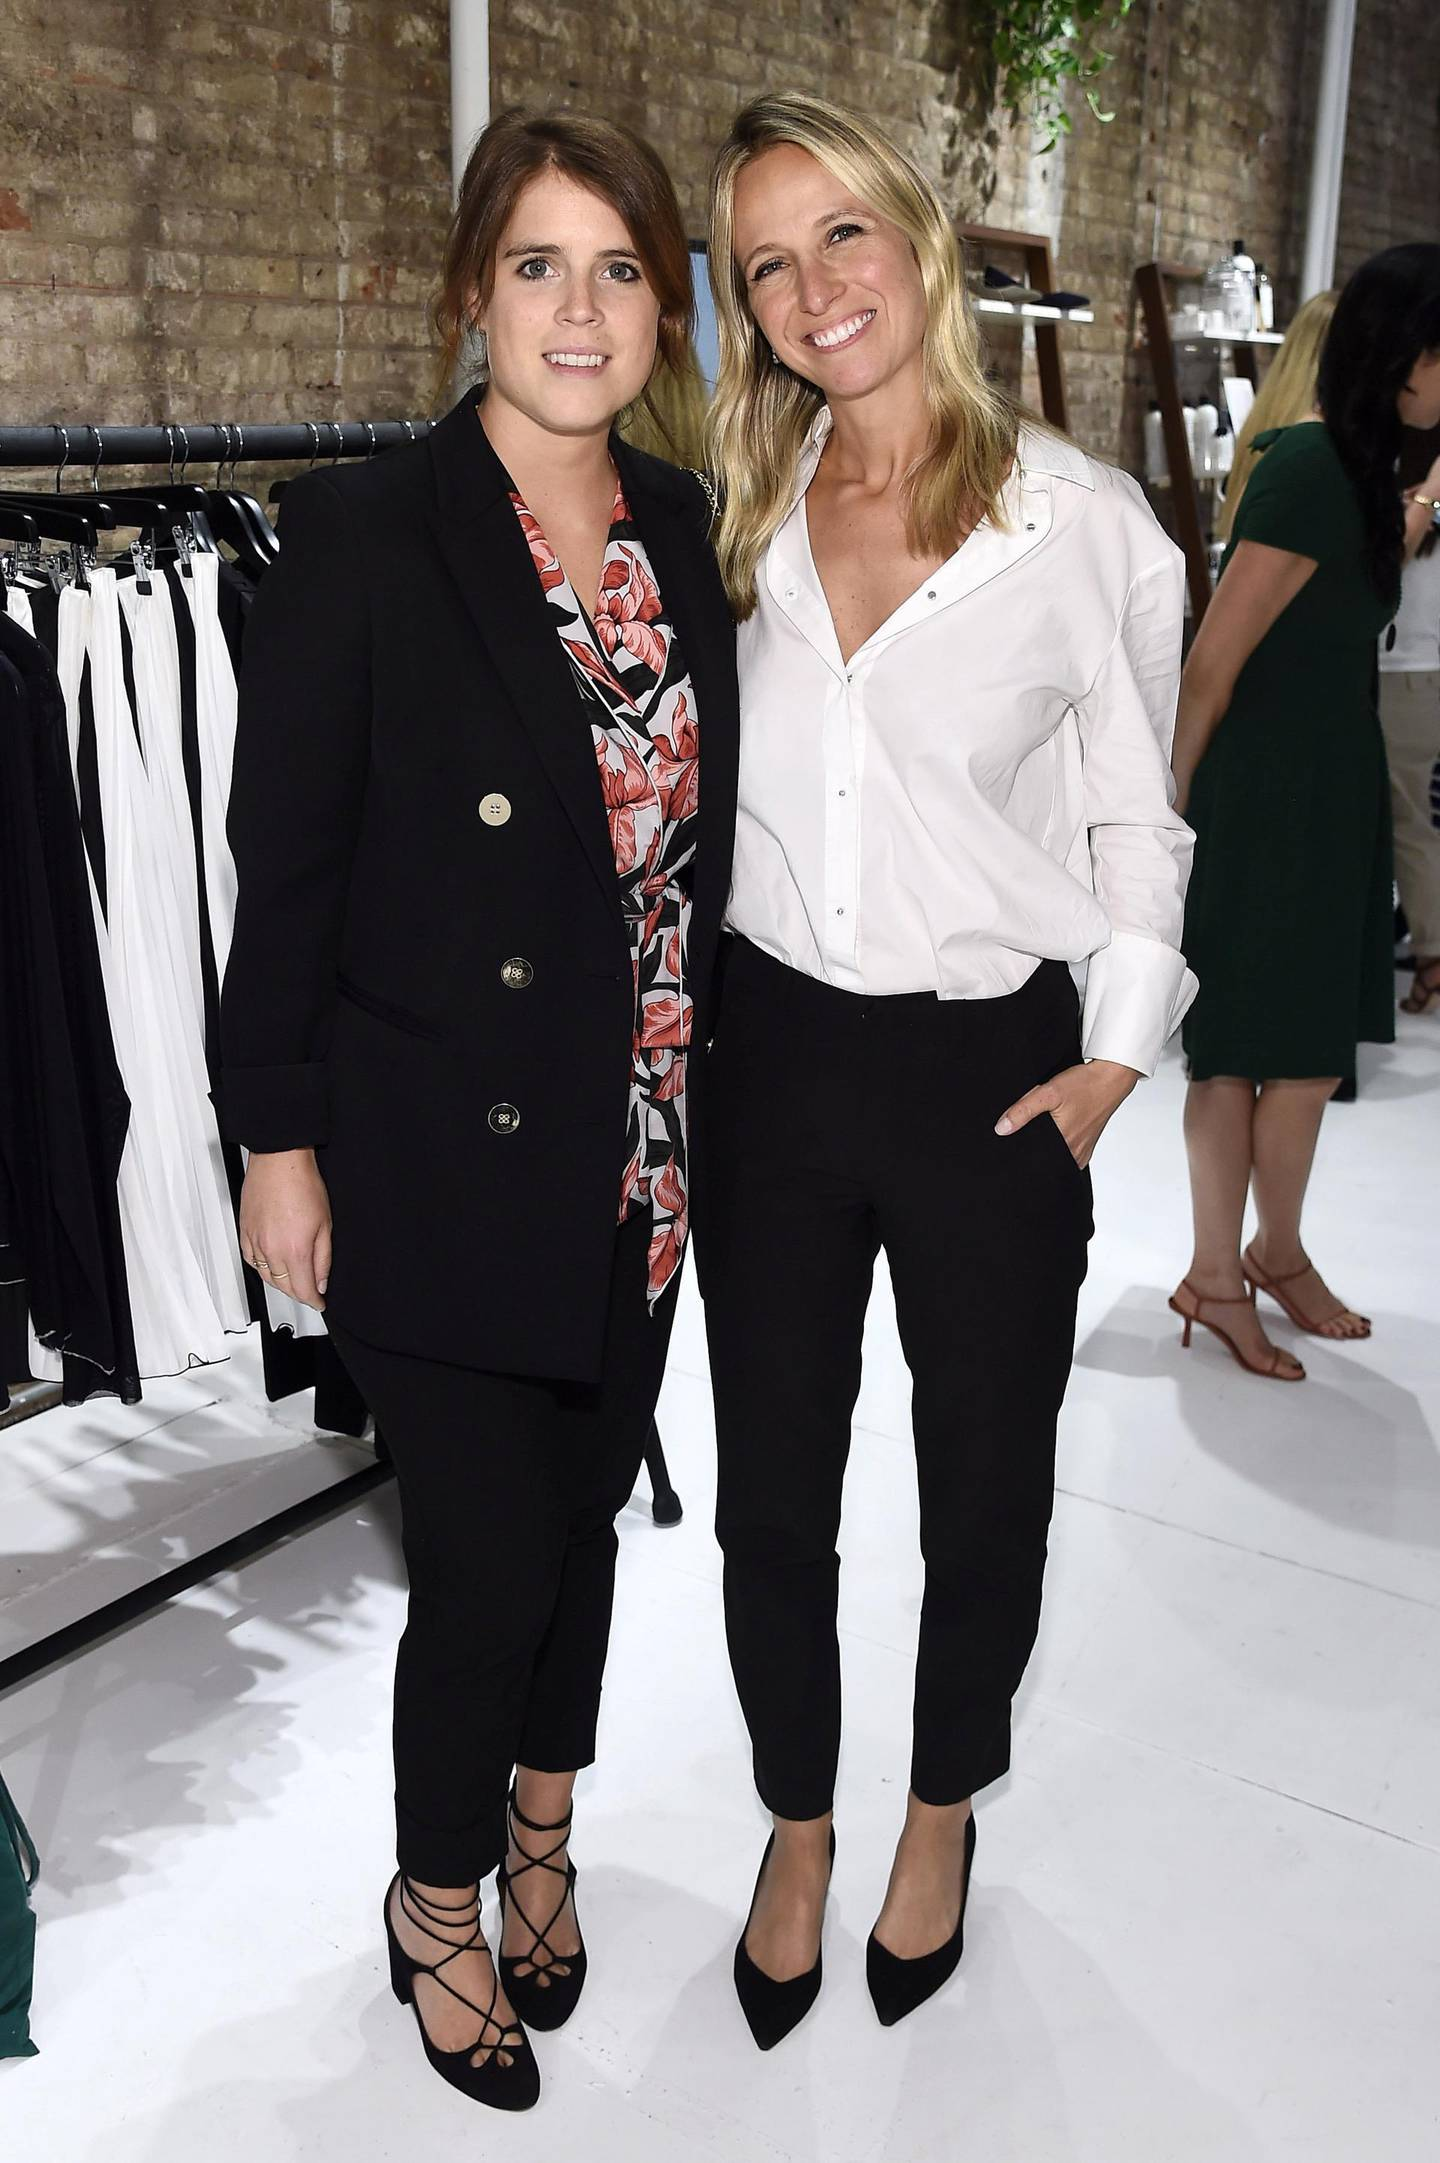 NEW YORK, NEW YORK - SEPTEMBER 09: (EXCLUSIVE COVERAGE) Princess Eugenie of York and Misha Nanoo attend Misha Nonoo Pop-Up Launch Event on September 09, 2019 in New York City. (Photo by Steven Ferdman/Getty Images)